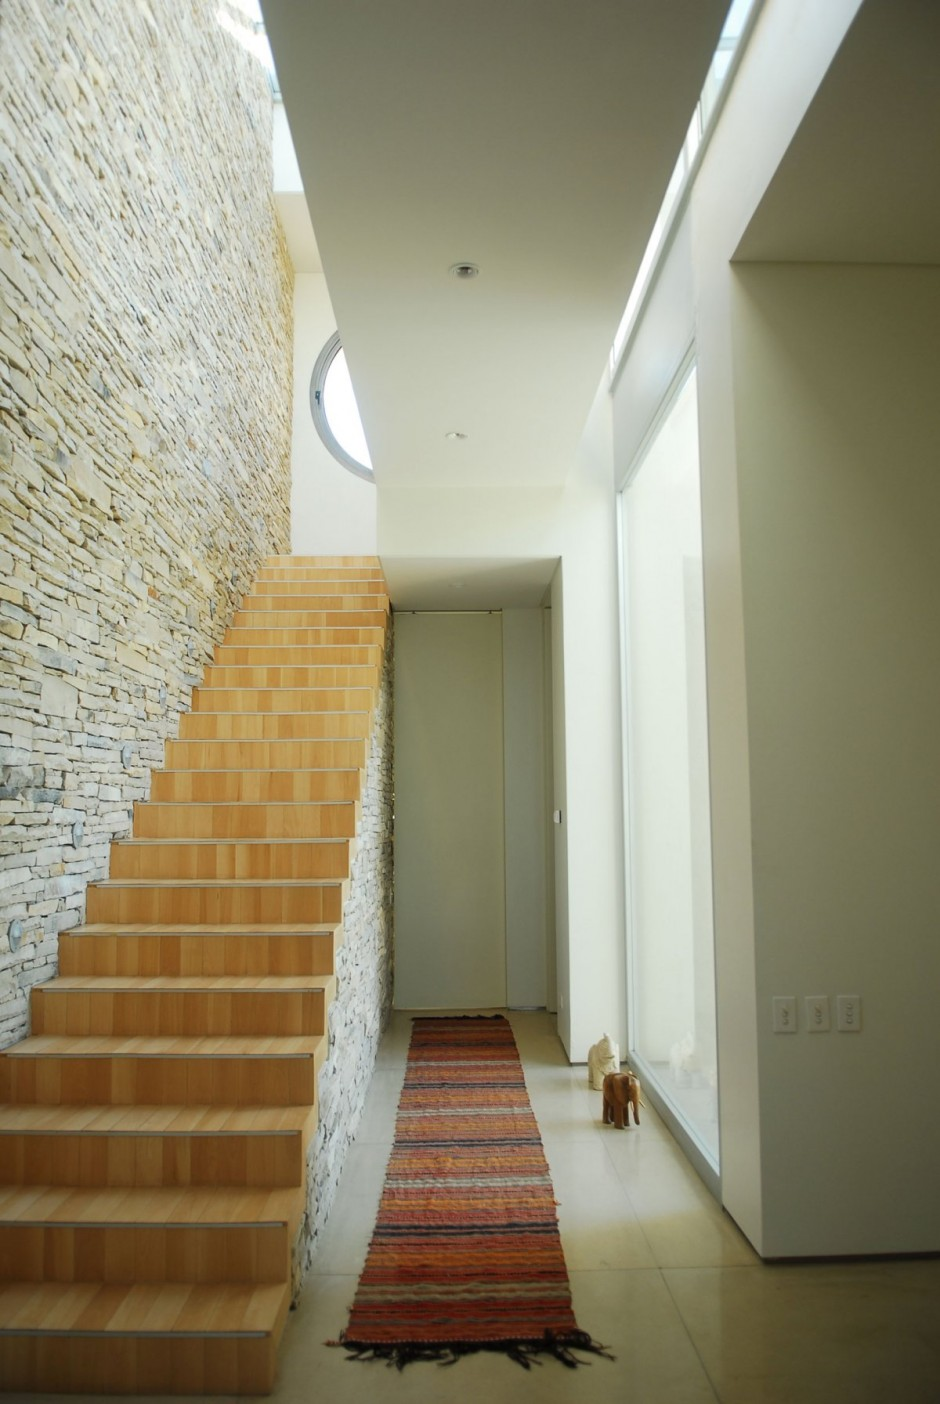 Internal Stairwell In Stone And Wood Interior Design Ideas